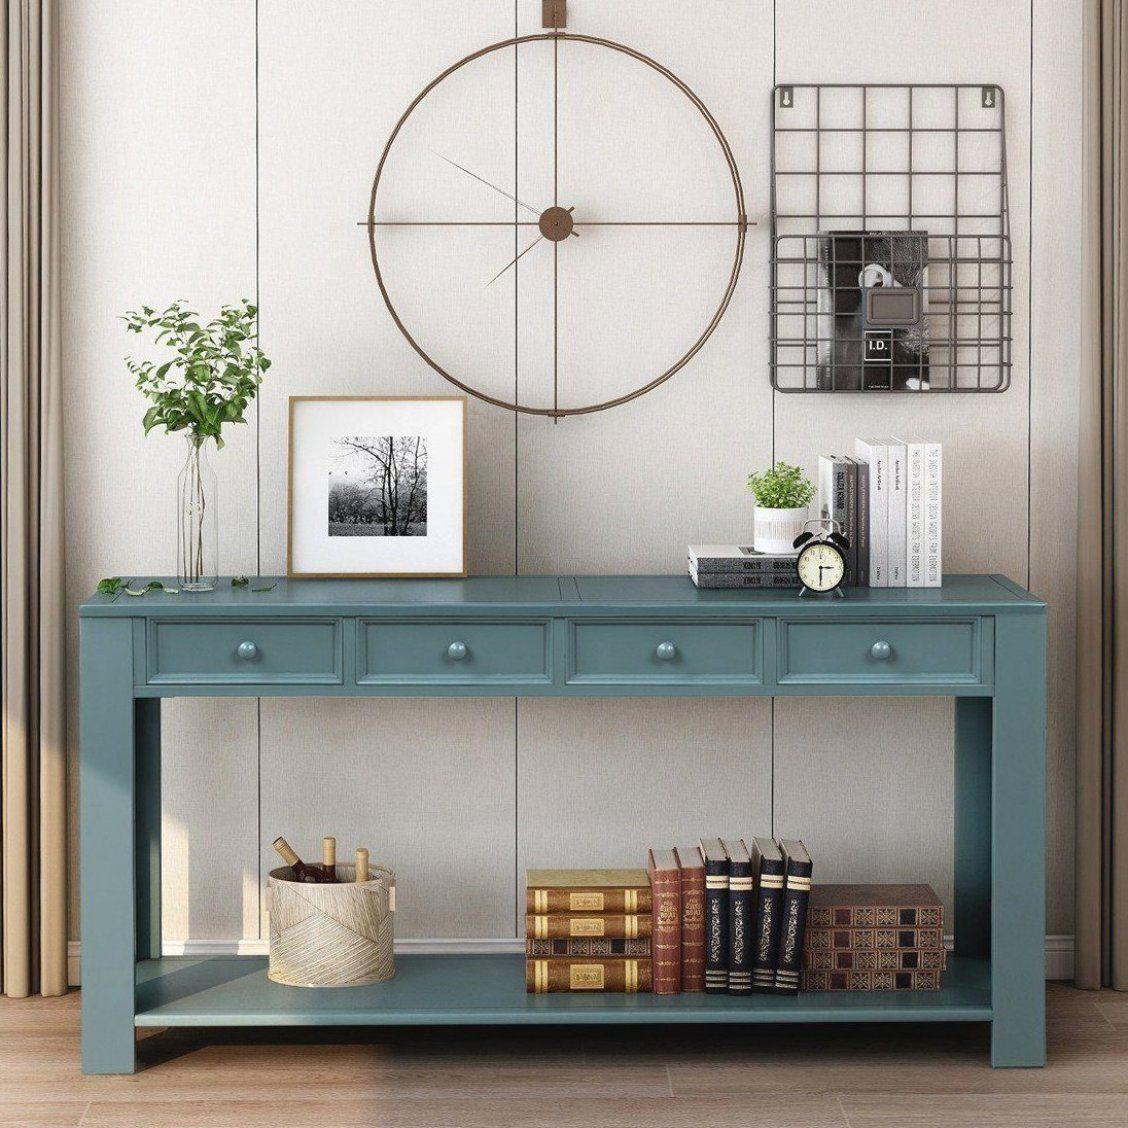 Console Table For Entryway Hallway Sofa Table With Storage Drawers And Bottom Shelf Dark Blue In 2020 Sofa Table With Storage Console Table Wood Console Table